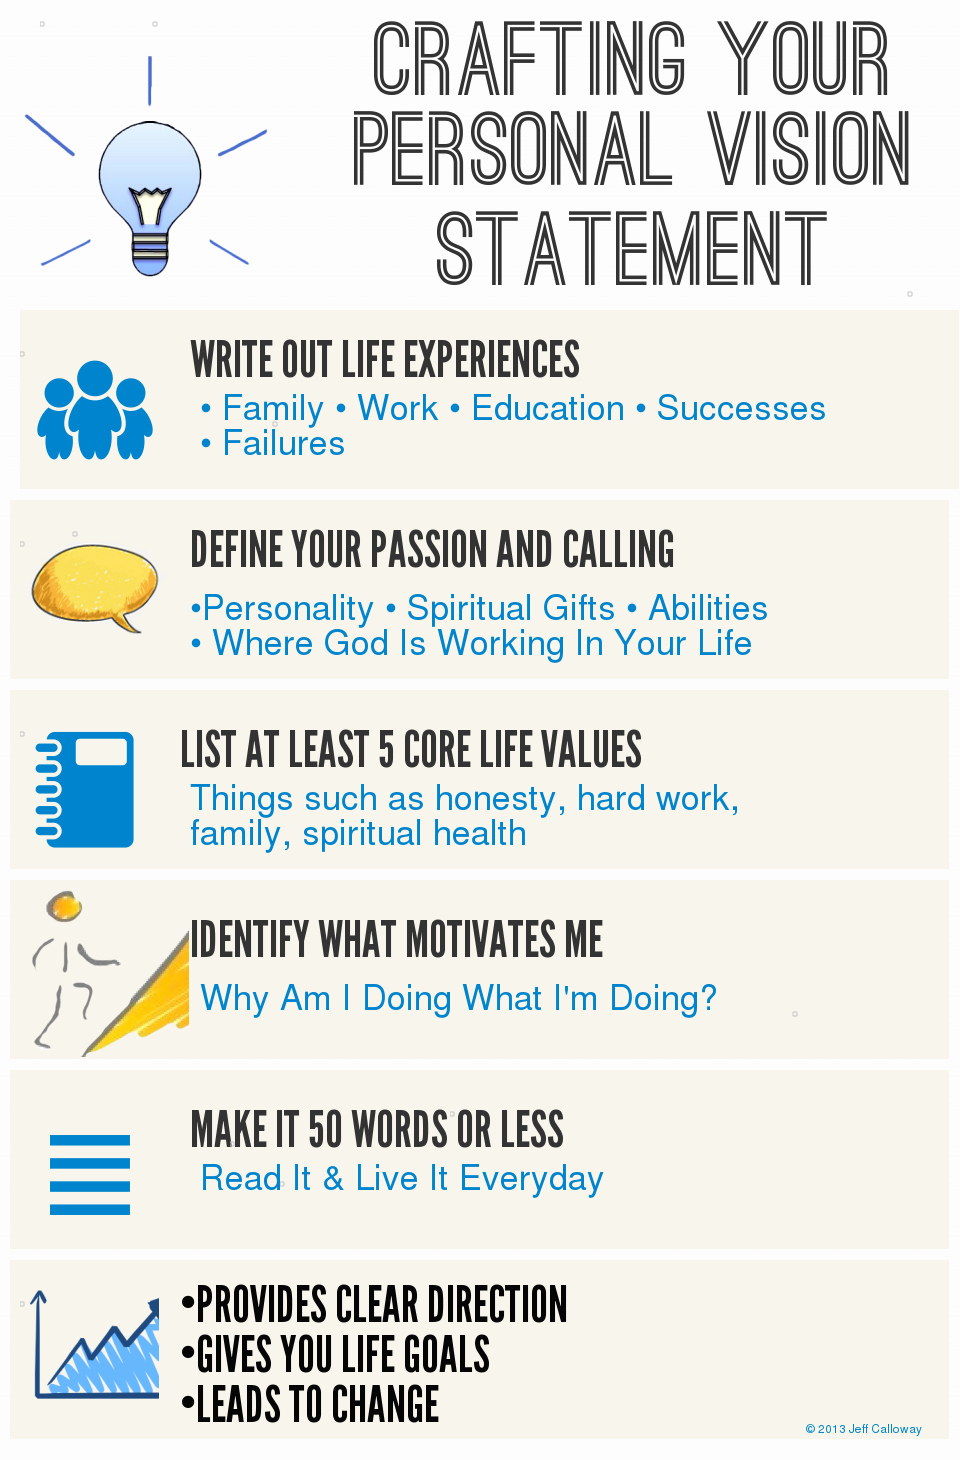 Personal Vision Statement Template Inspirational Pin by andrea Kocourek On Focus forward